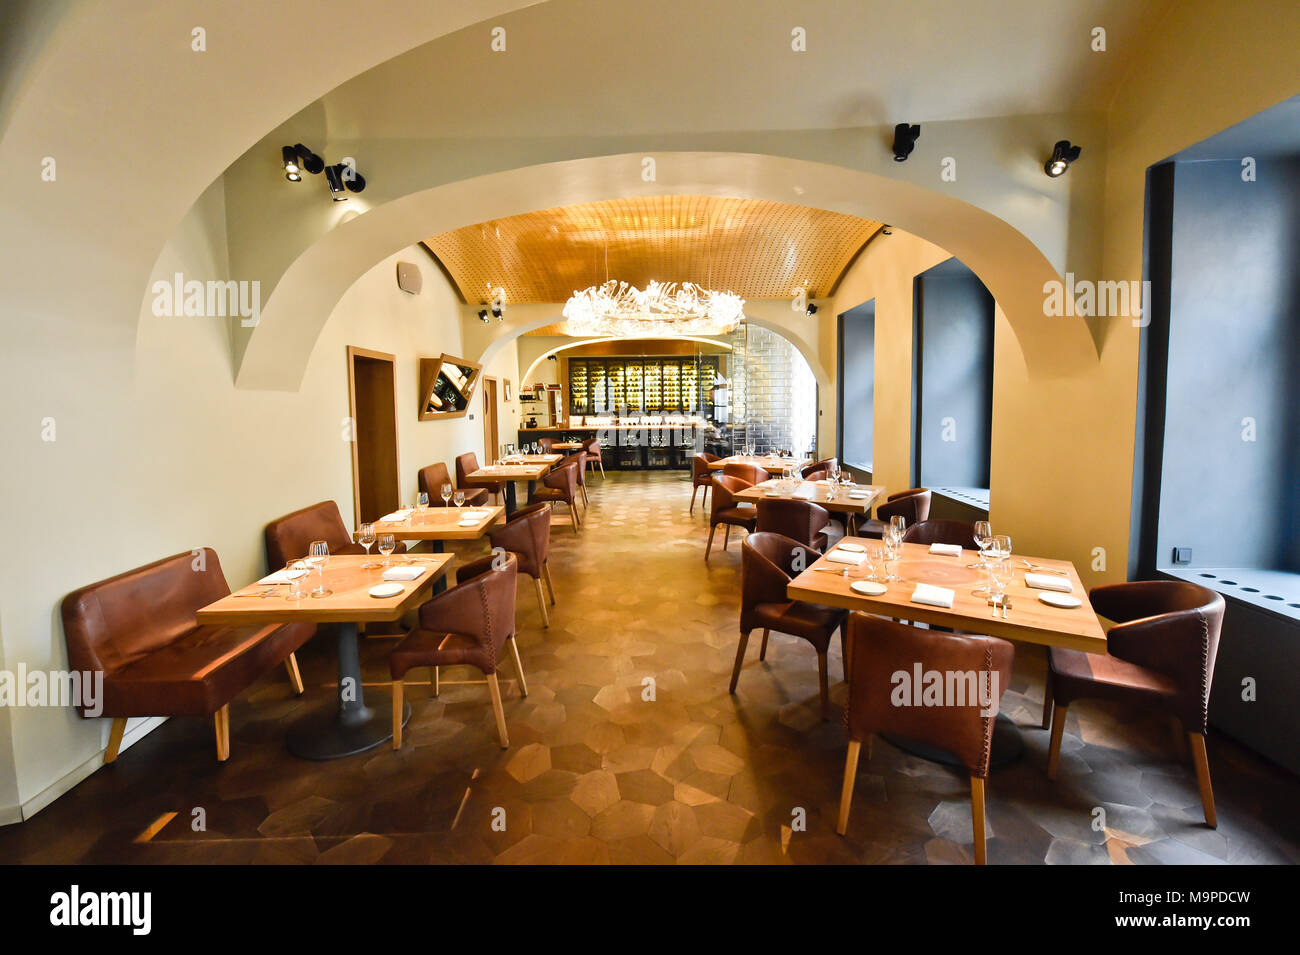 Two restaurants in Prague with Czech chefs, La Degustation Boheme Bourgeoise and Field, have defended their Michelin stars, while Alcron has lost it in this year. On the photo is seen La Degustation Boheme Bourgeoise restaurant in Prague, Czech Republic, on March 27, 2018. (CTK Photo/Vit Simanek) - Stock Image